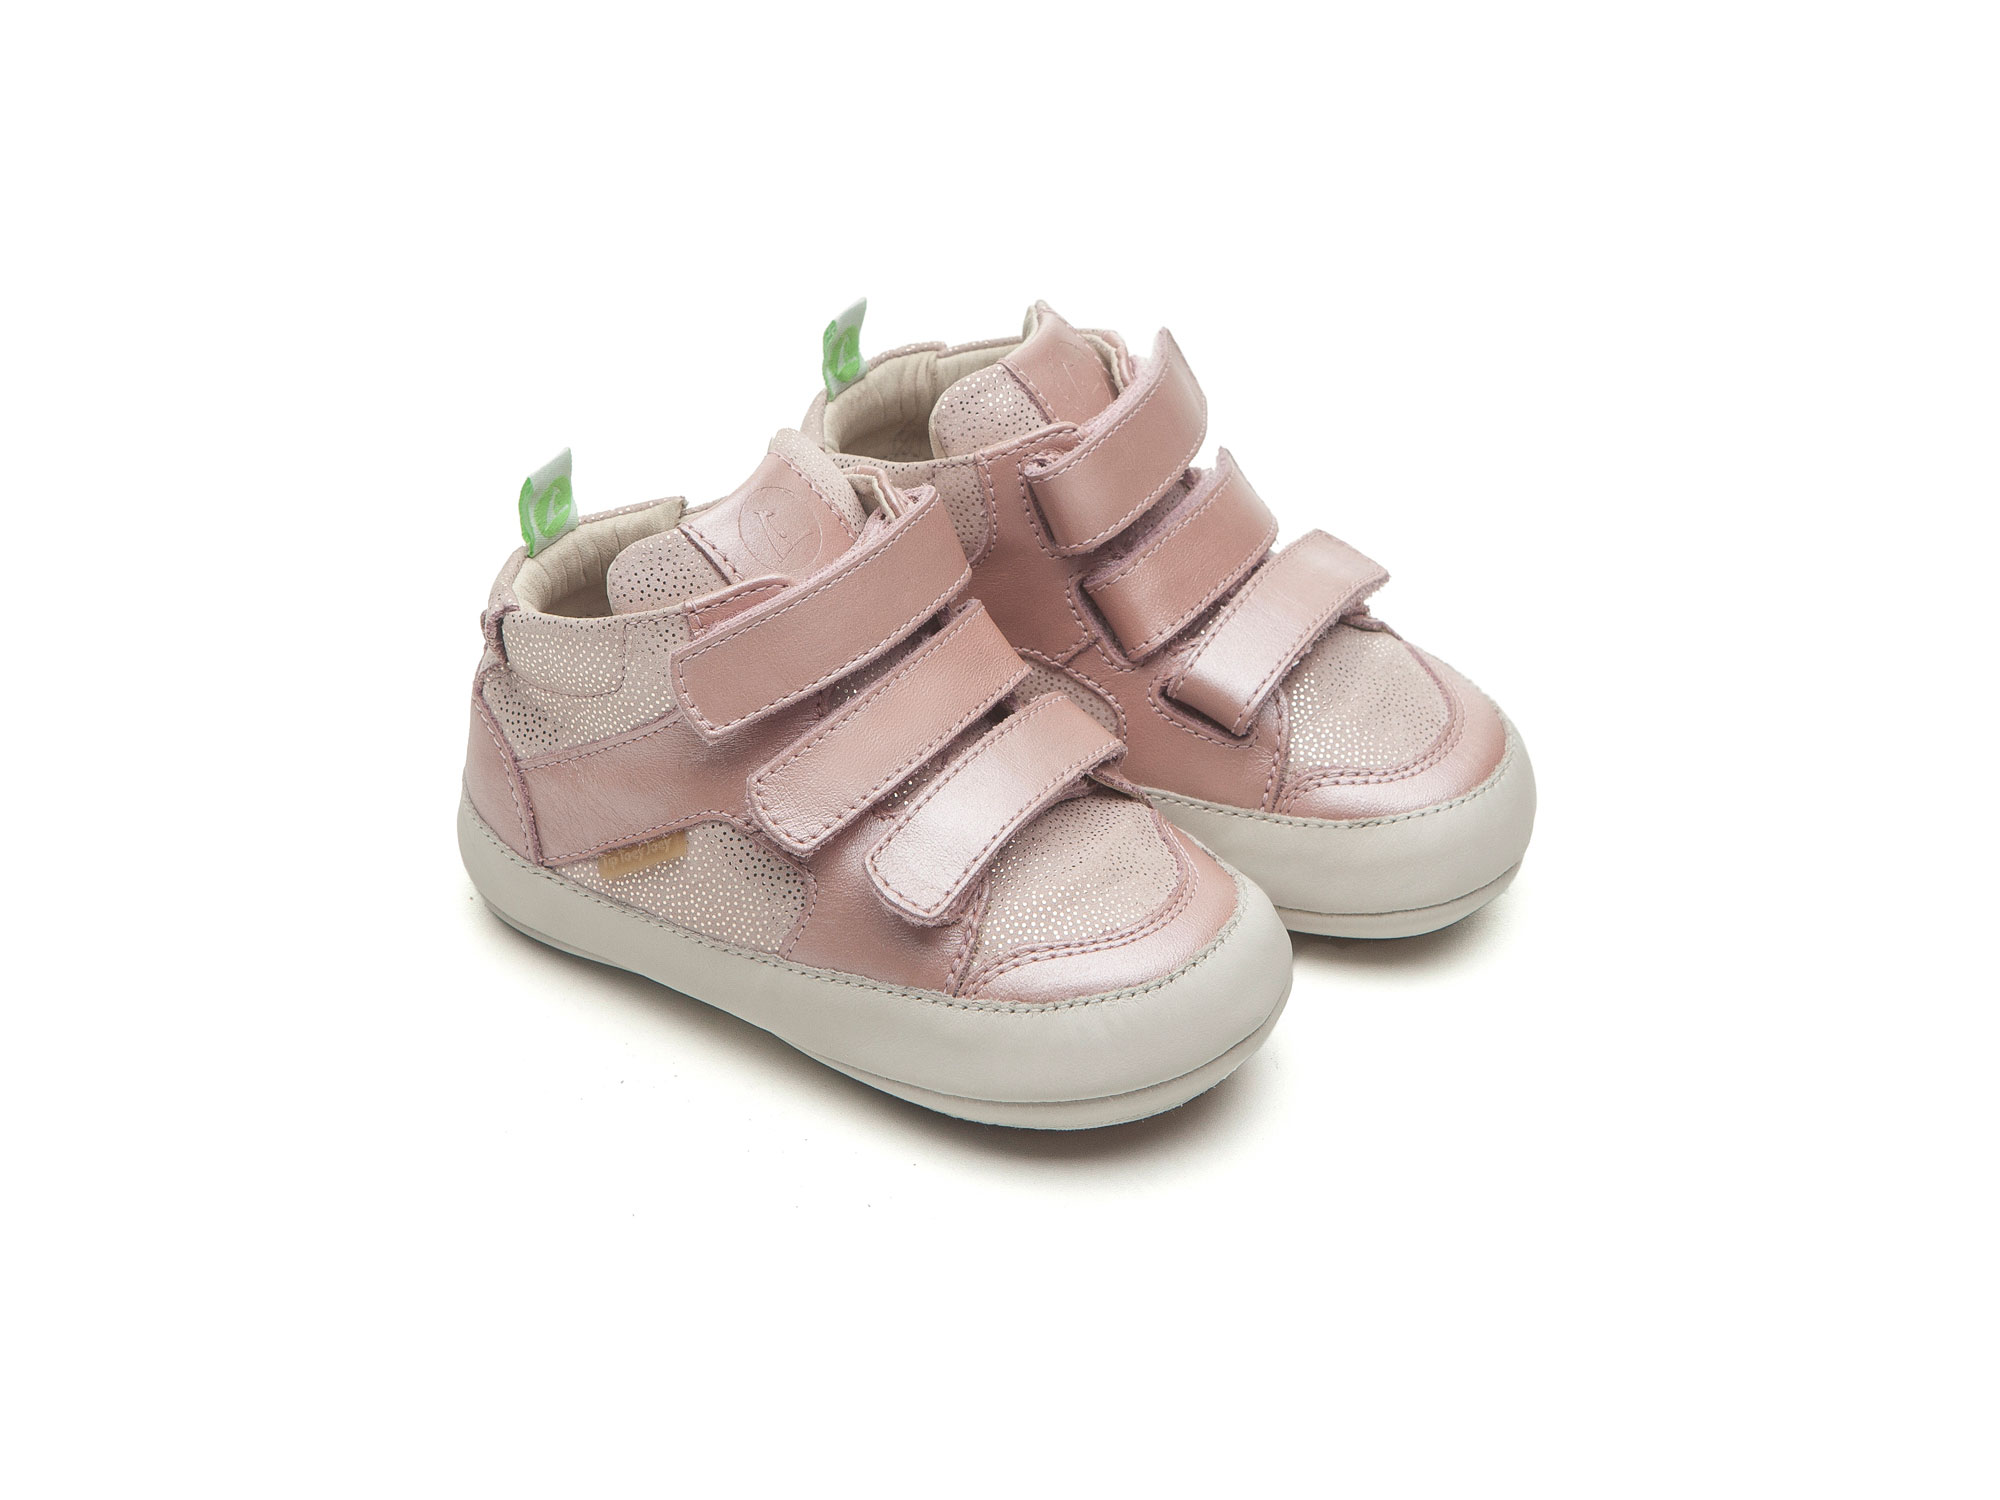 Baby Shoes Boots Metropoly Pink Size 14